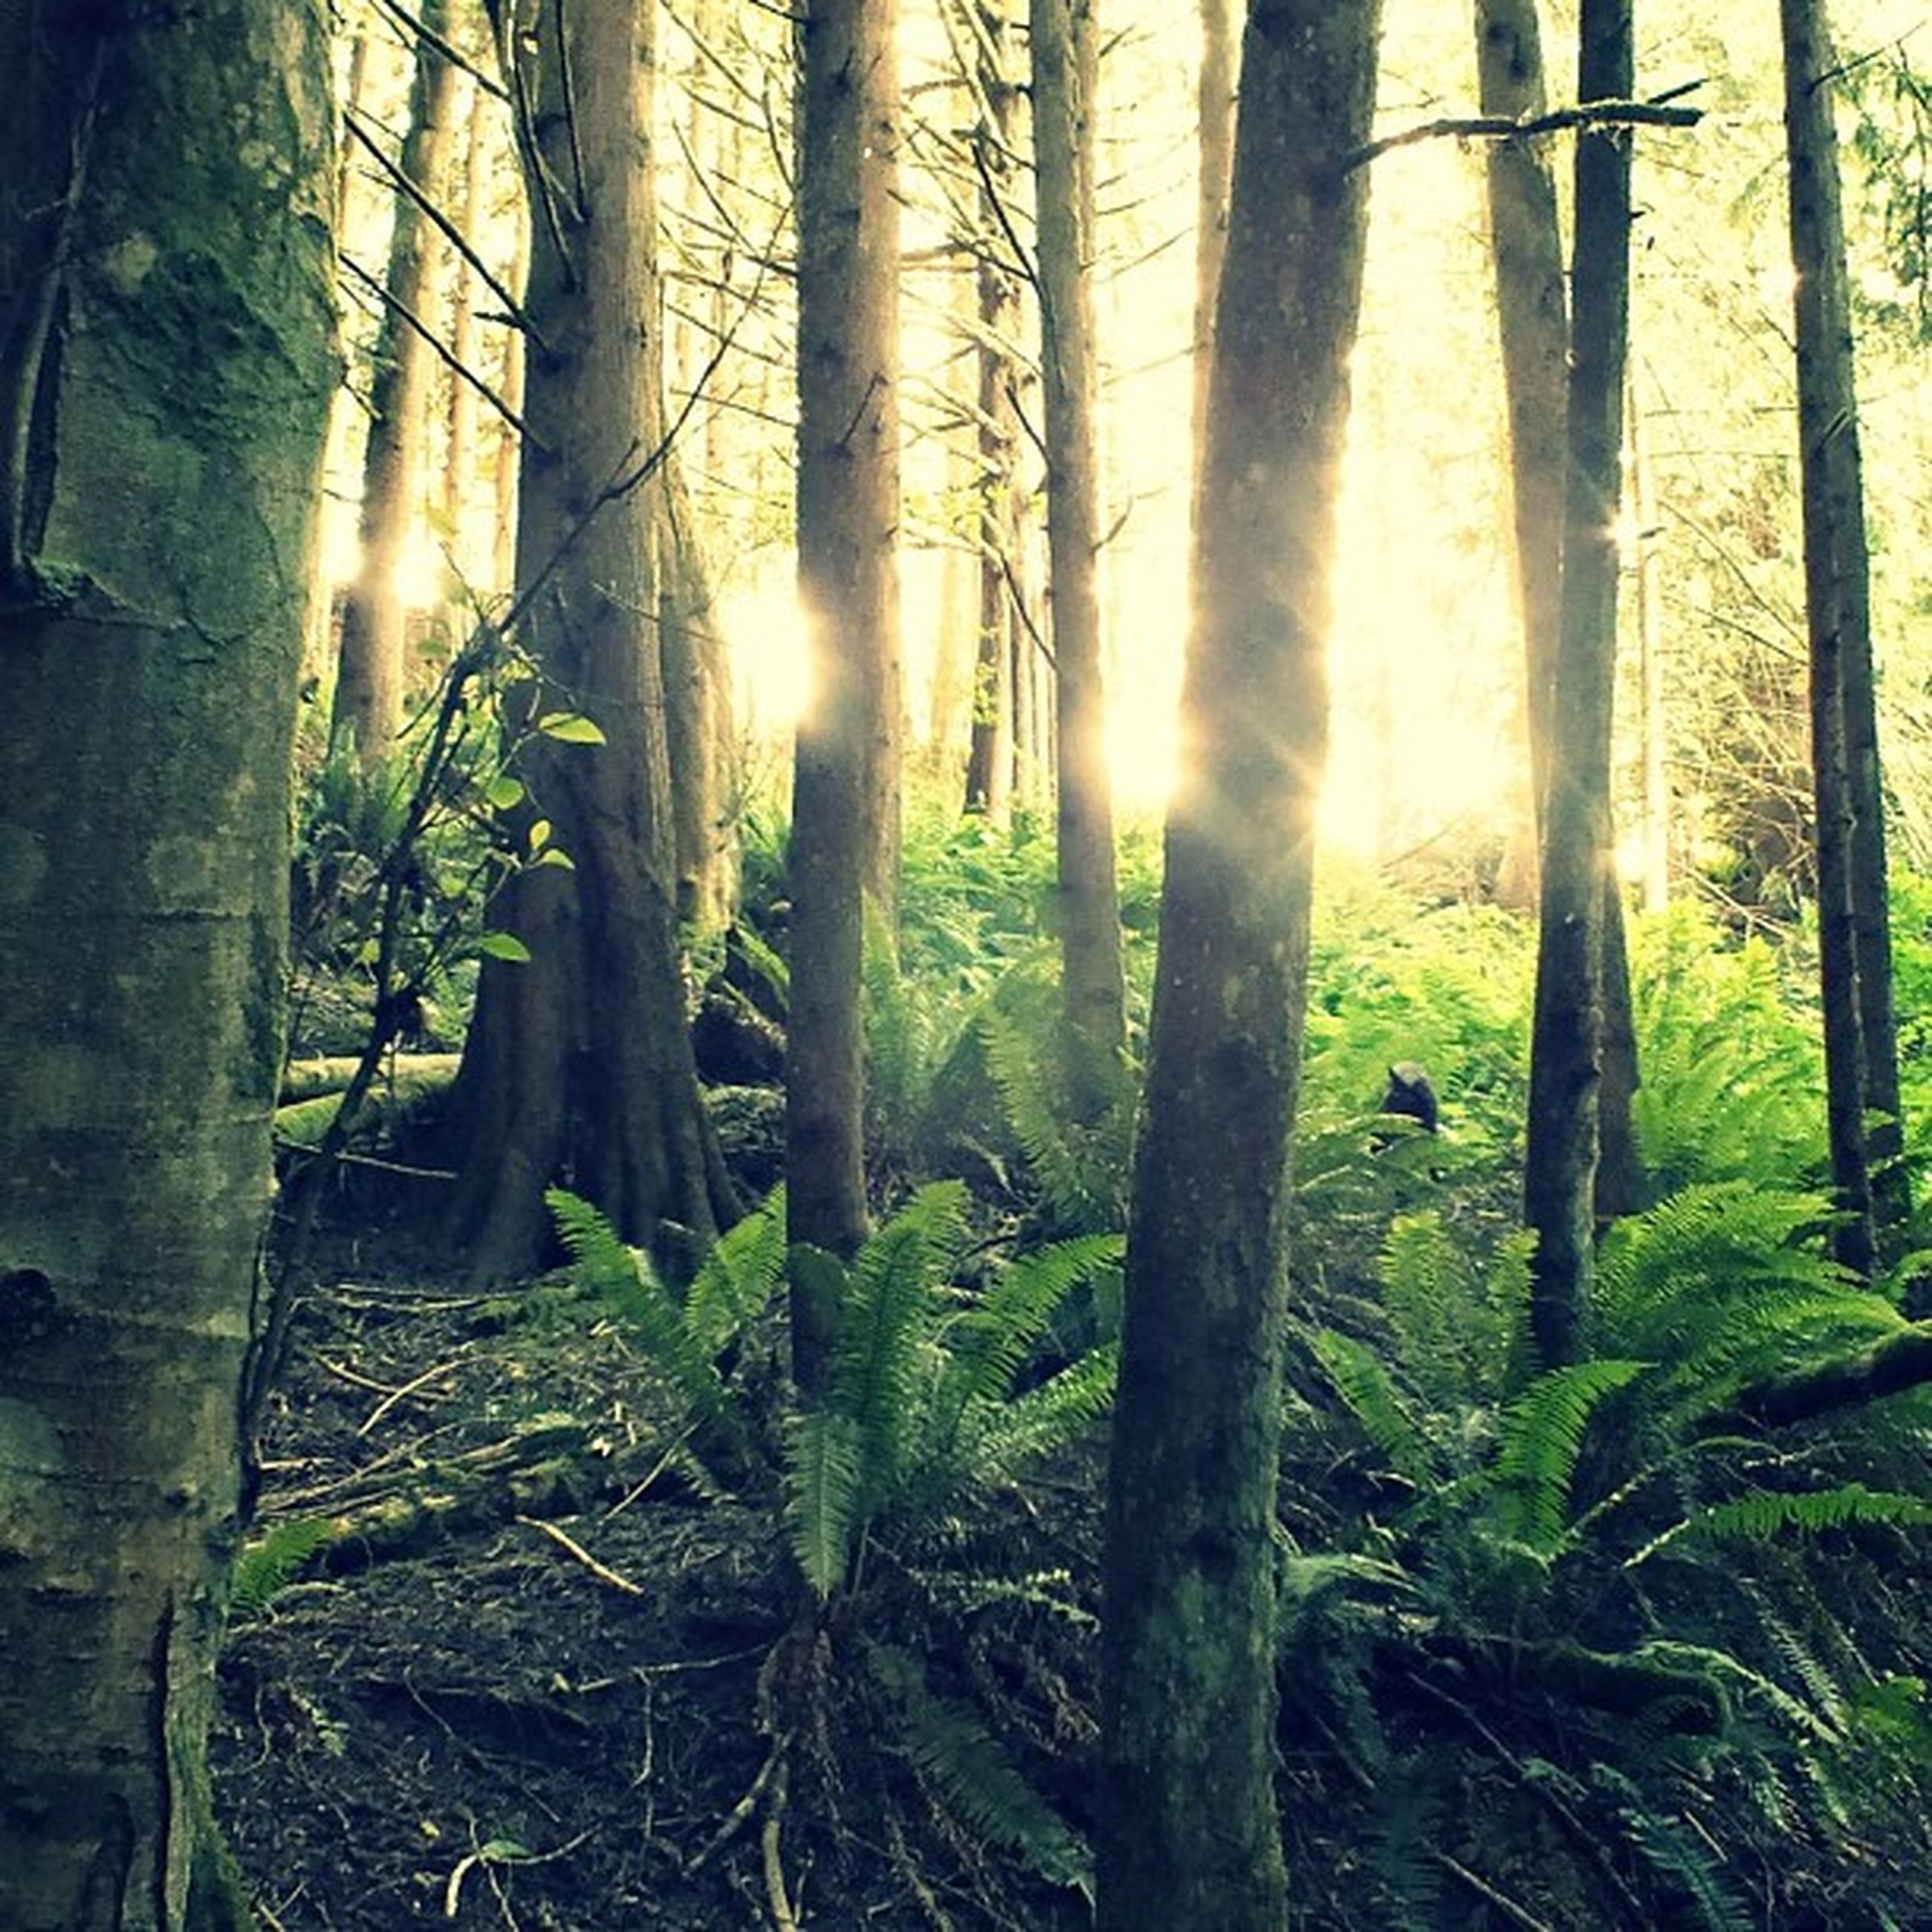 sun, tree, tranquility, sunbeam, sunlight, forest, tree trunk, tranquil scene, growth, nature, woodland, lens flare, beauty in nature, scenics, back lit, landscape, non-urban scene, sunset, branch, field